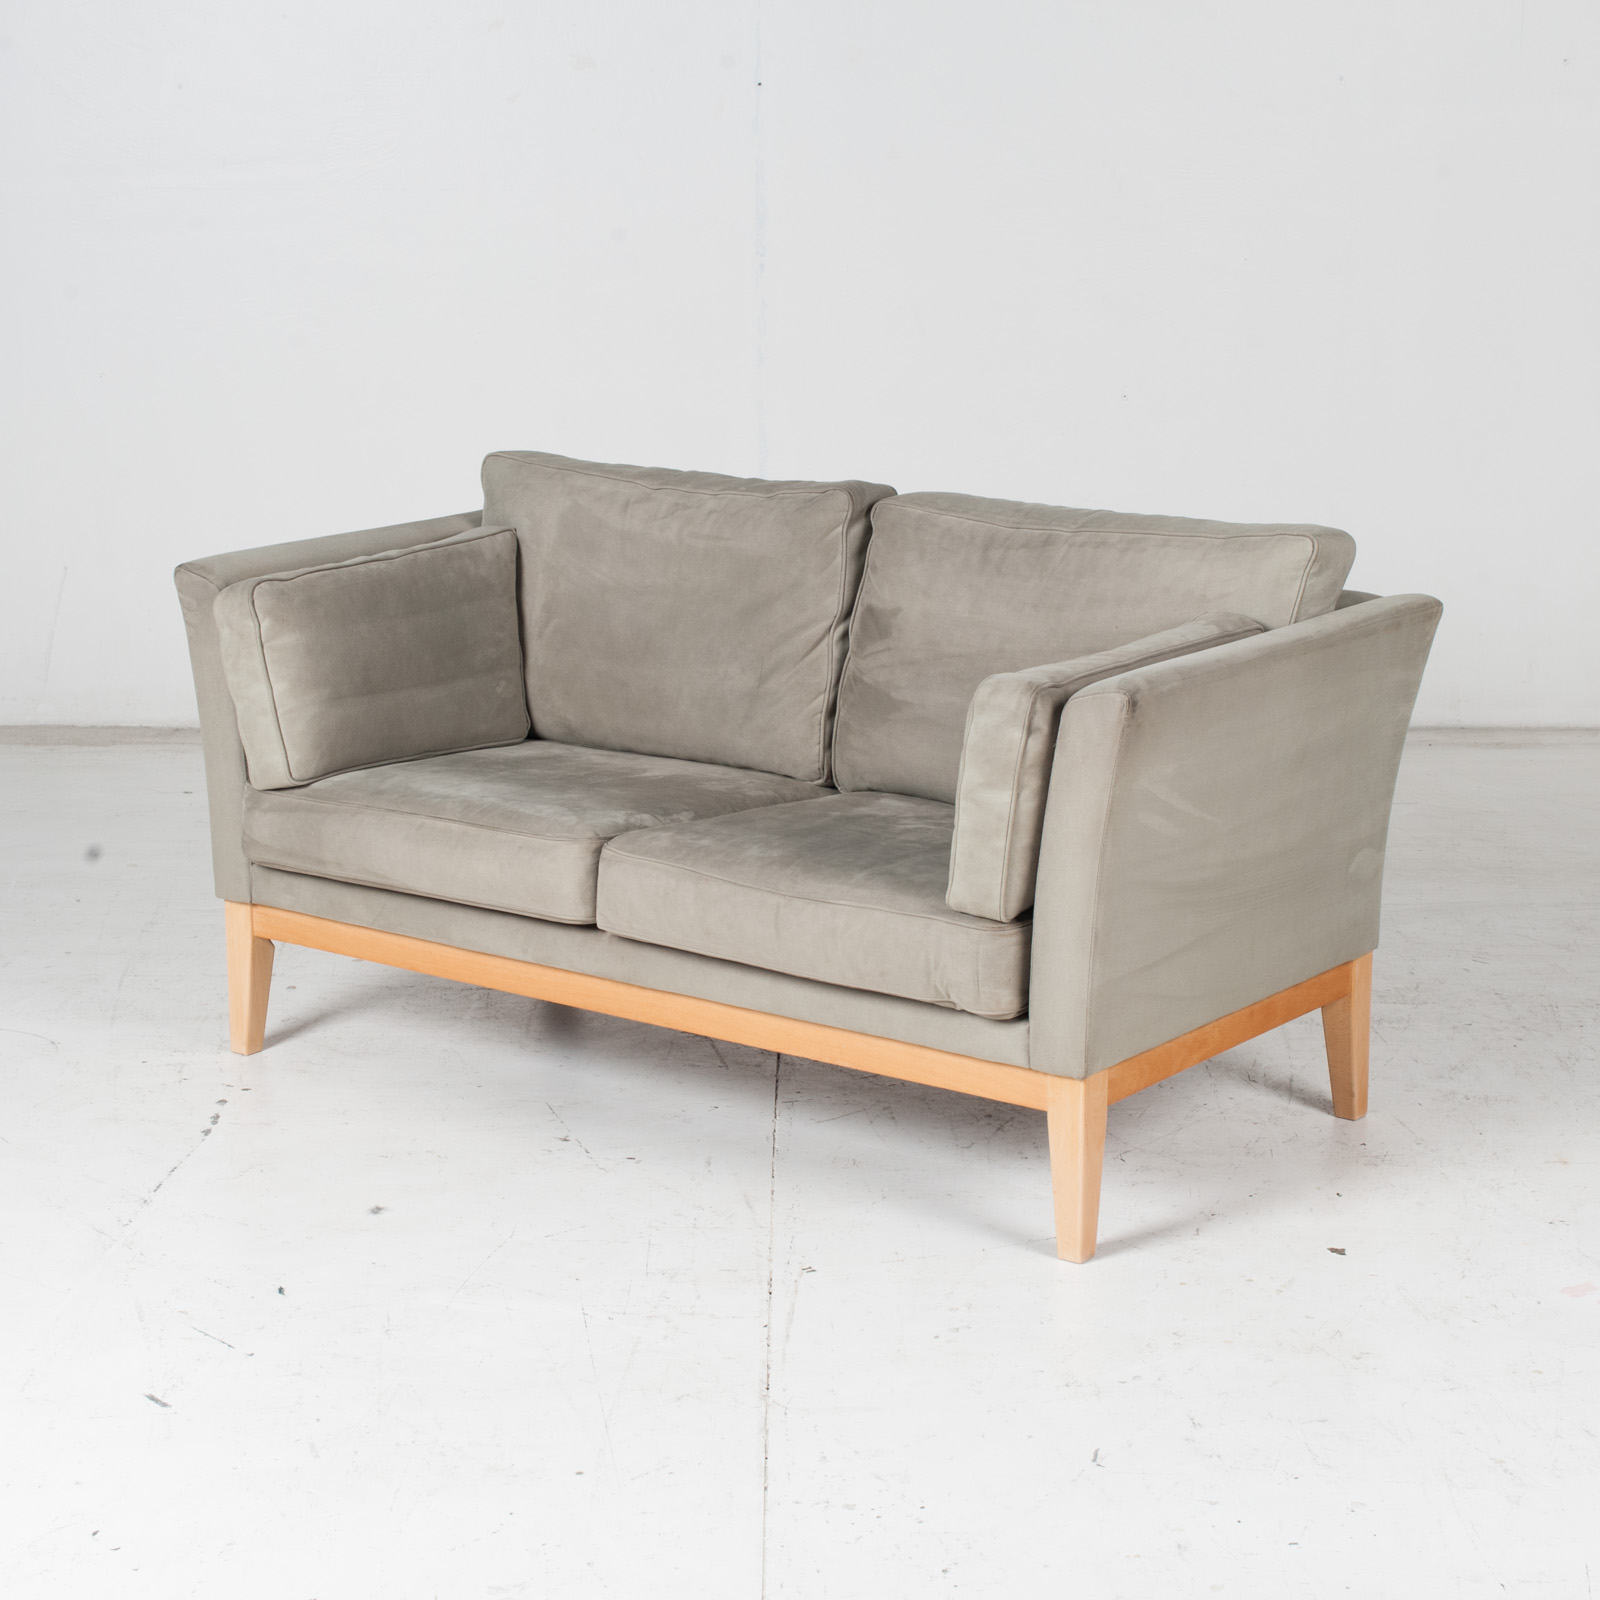 2 Seat Sofa By Stouby In Grey Macro Suede, 1960s, Denmark4